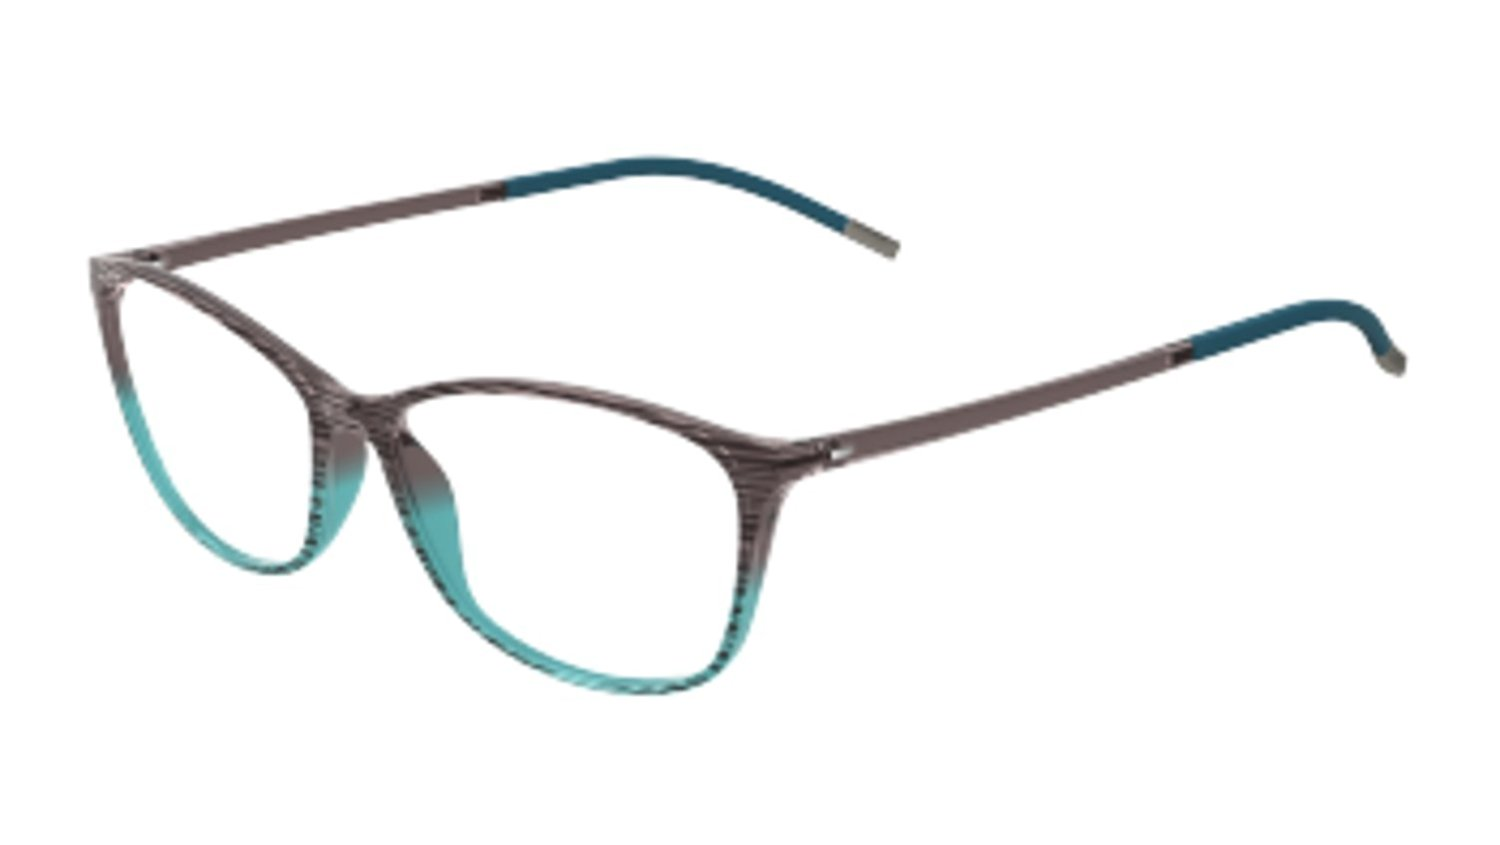 6ee7b2475c3 Get Quotations · Silhouette Eyeglasses SPX Illusion 1563 6052 Mint Grad  Optical Frame 53x14x130